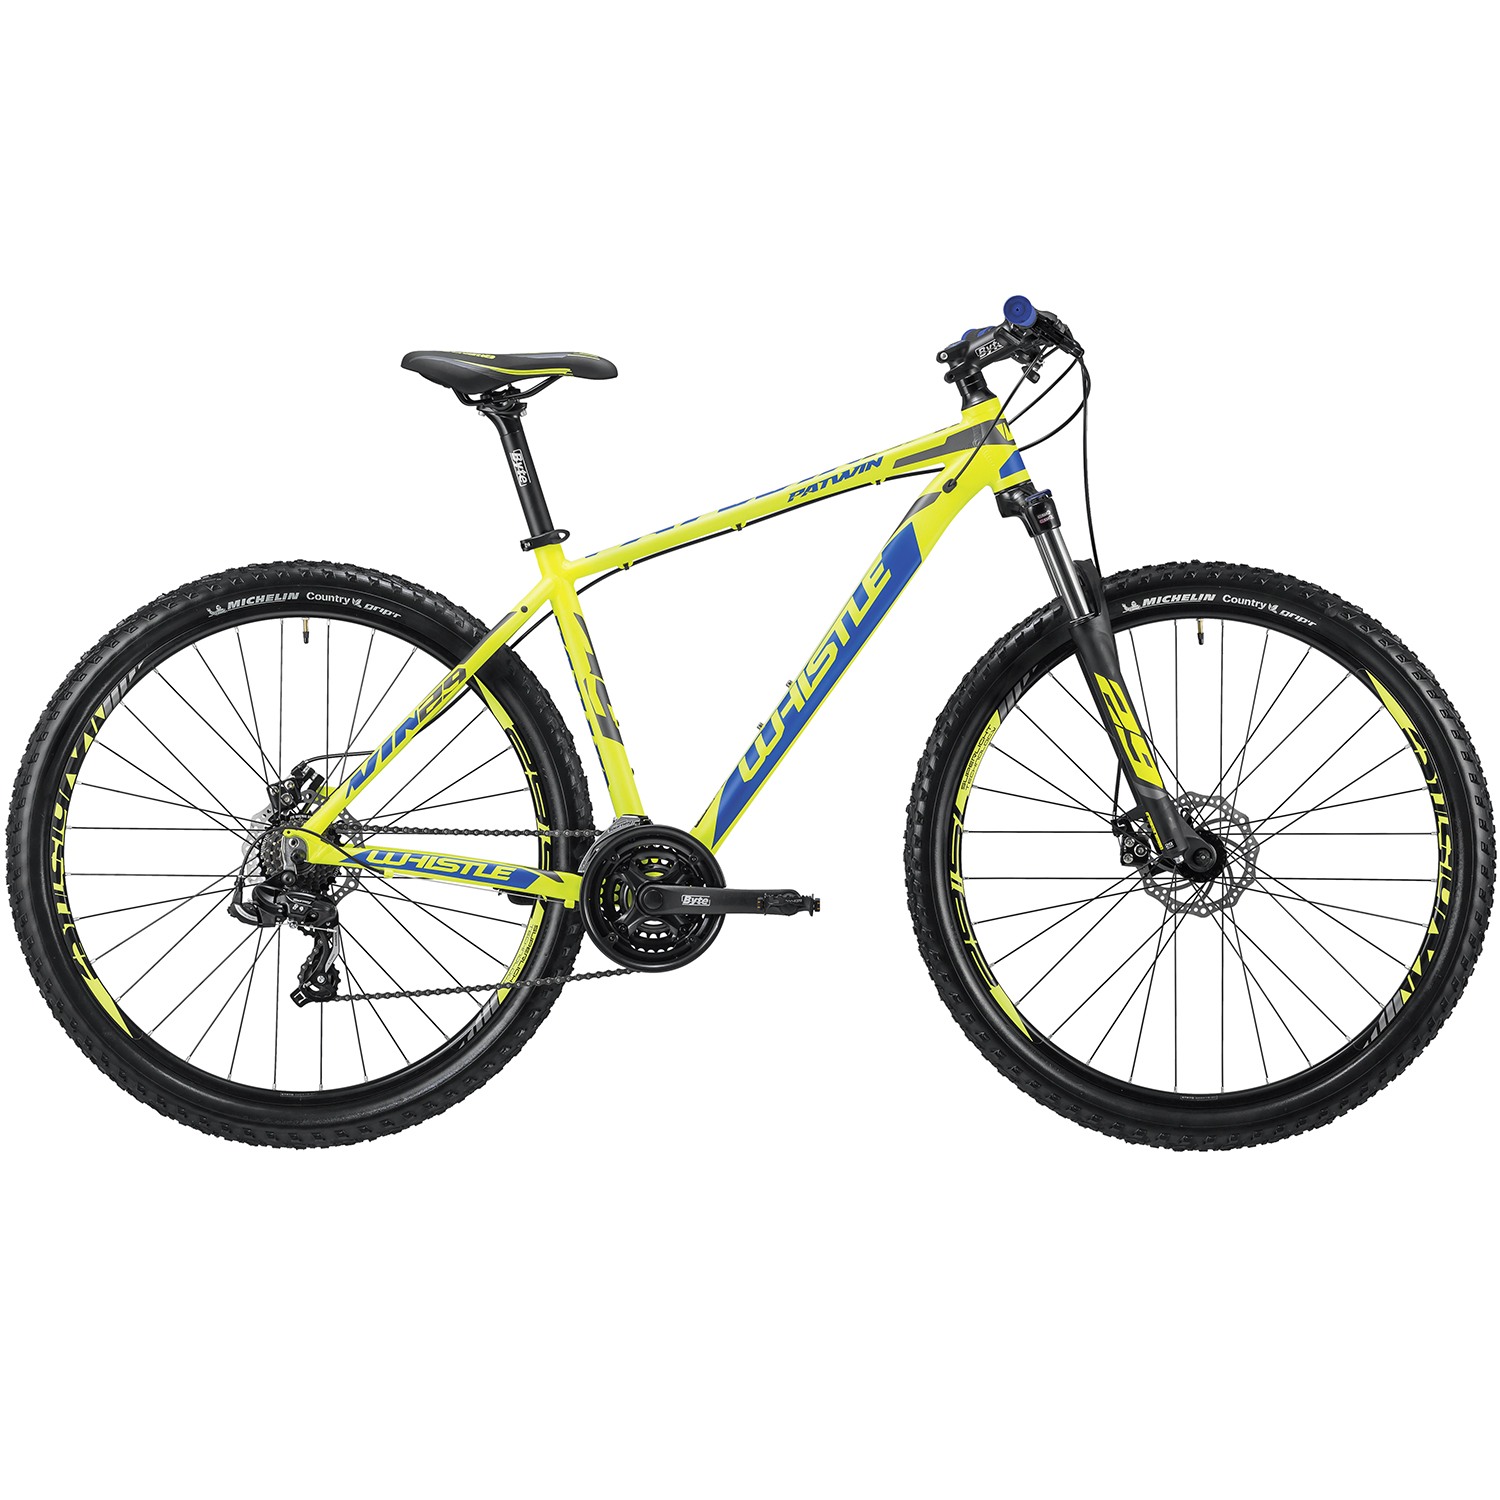 29 zoll mountainbike whistle patwin 1835 rahmengr e 17 19. Black Bedroom Furniture Sets. Home Design Ideas